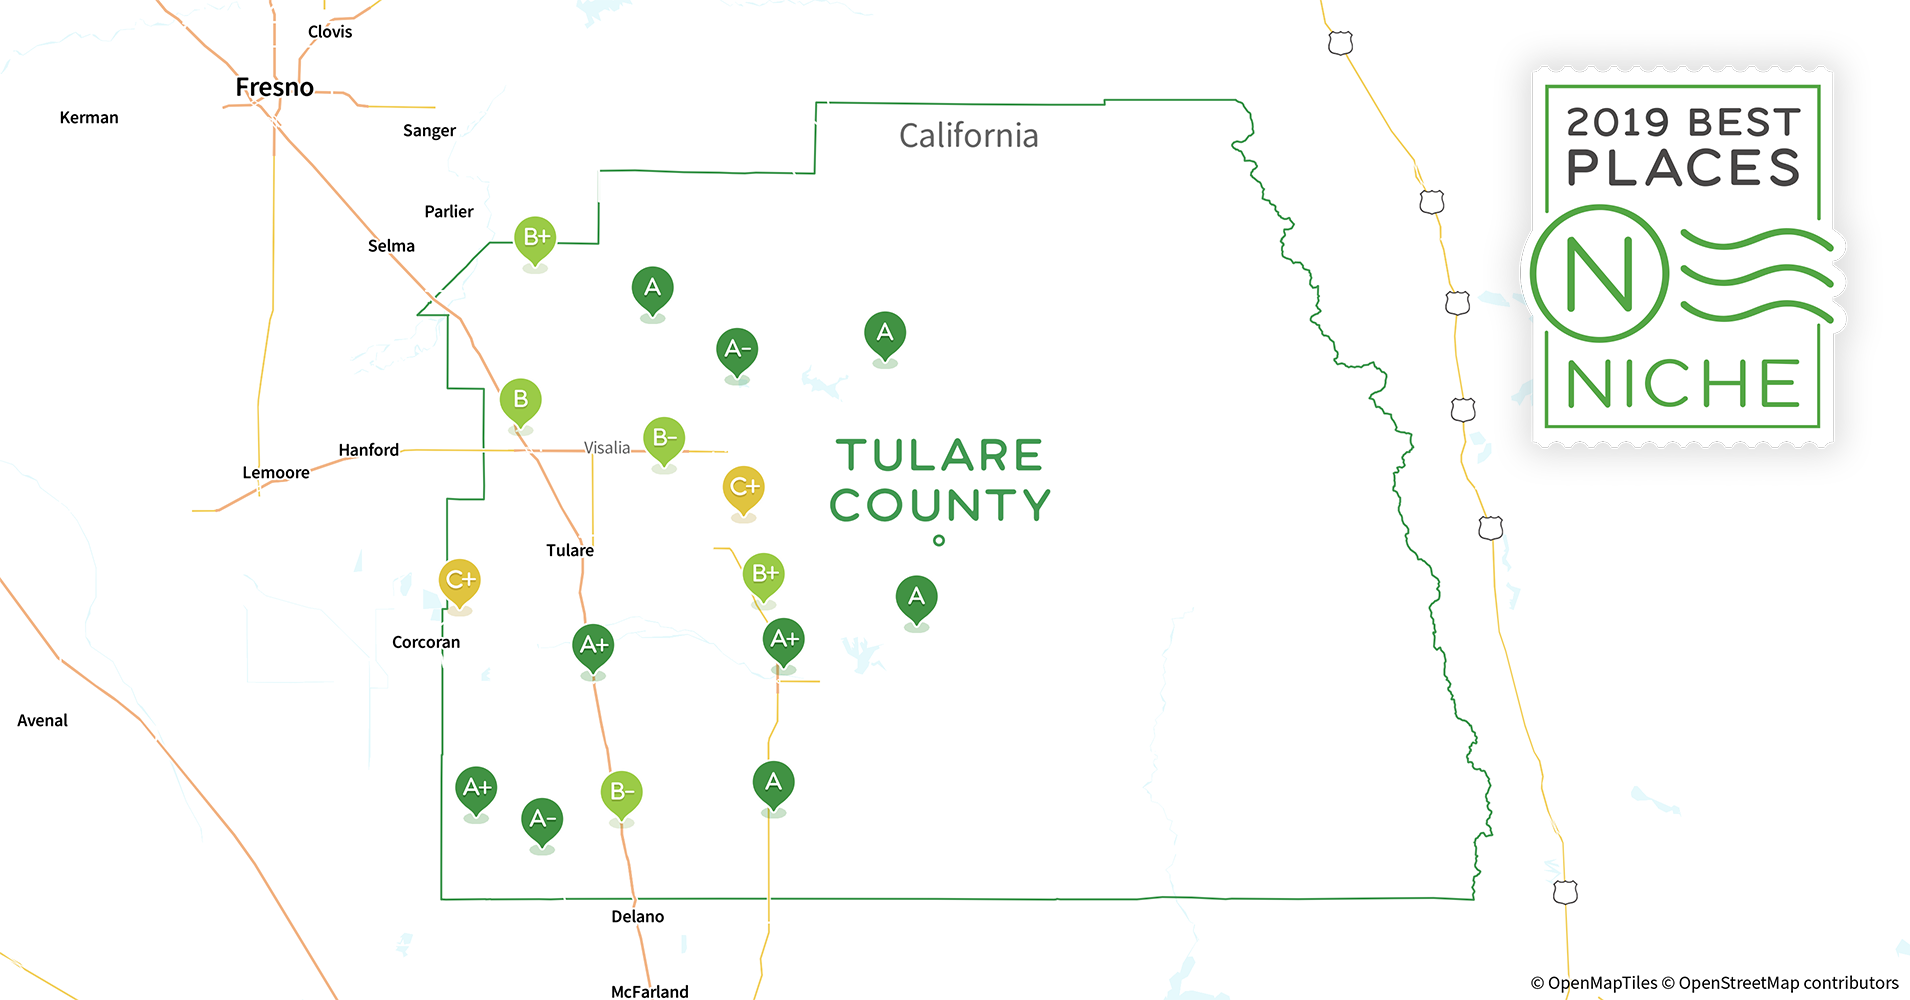 2019 best places to live in tulare county  ca